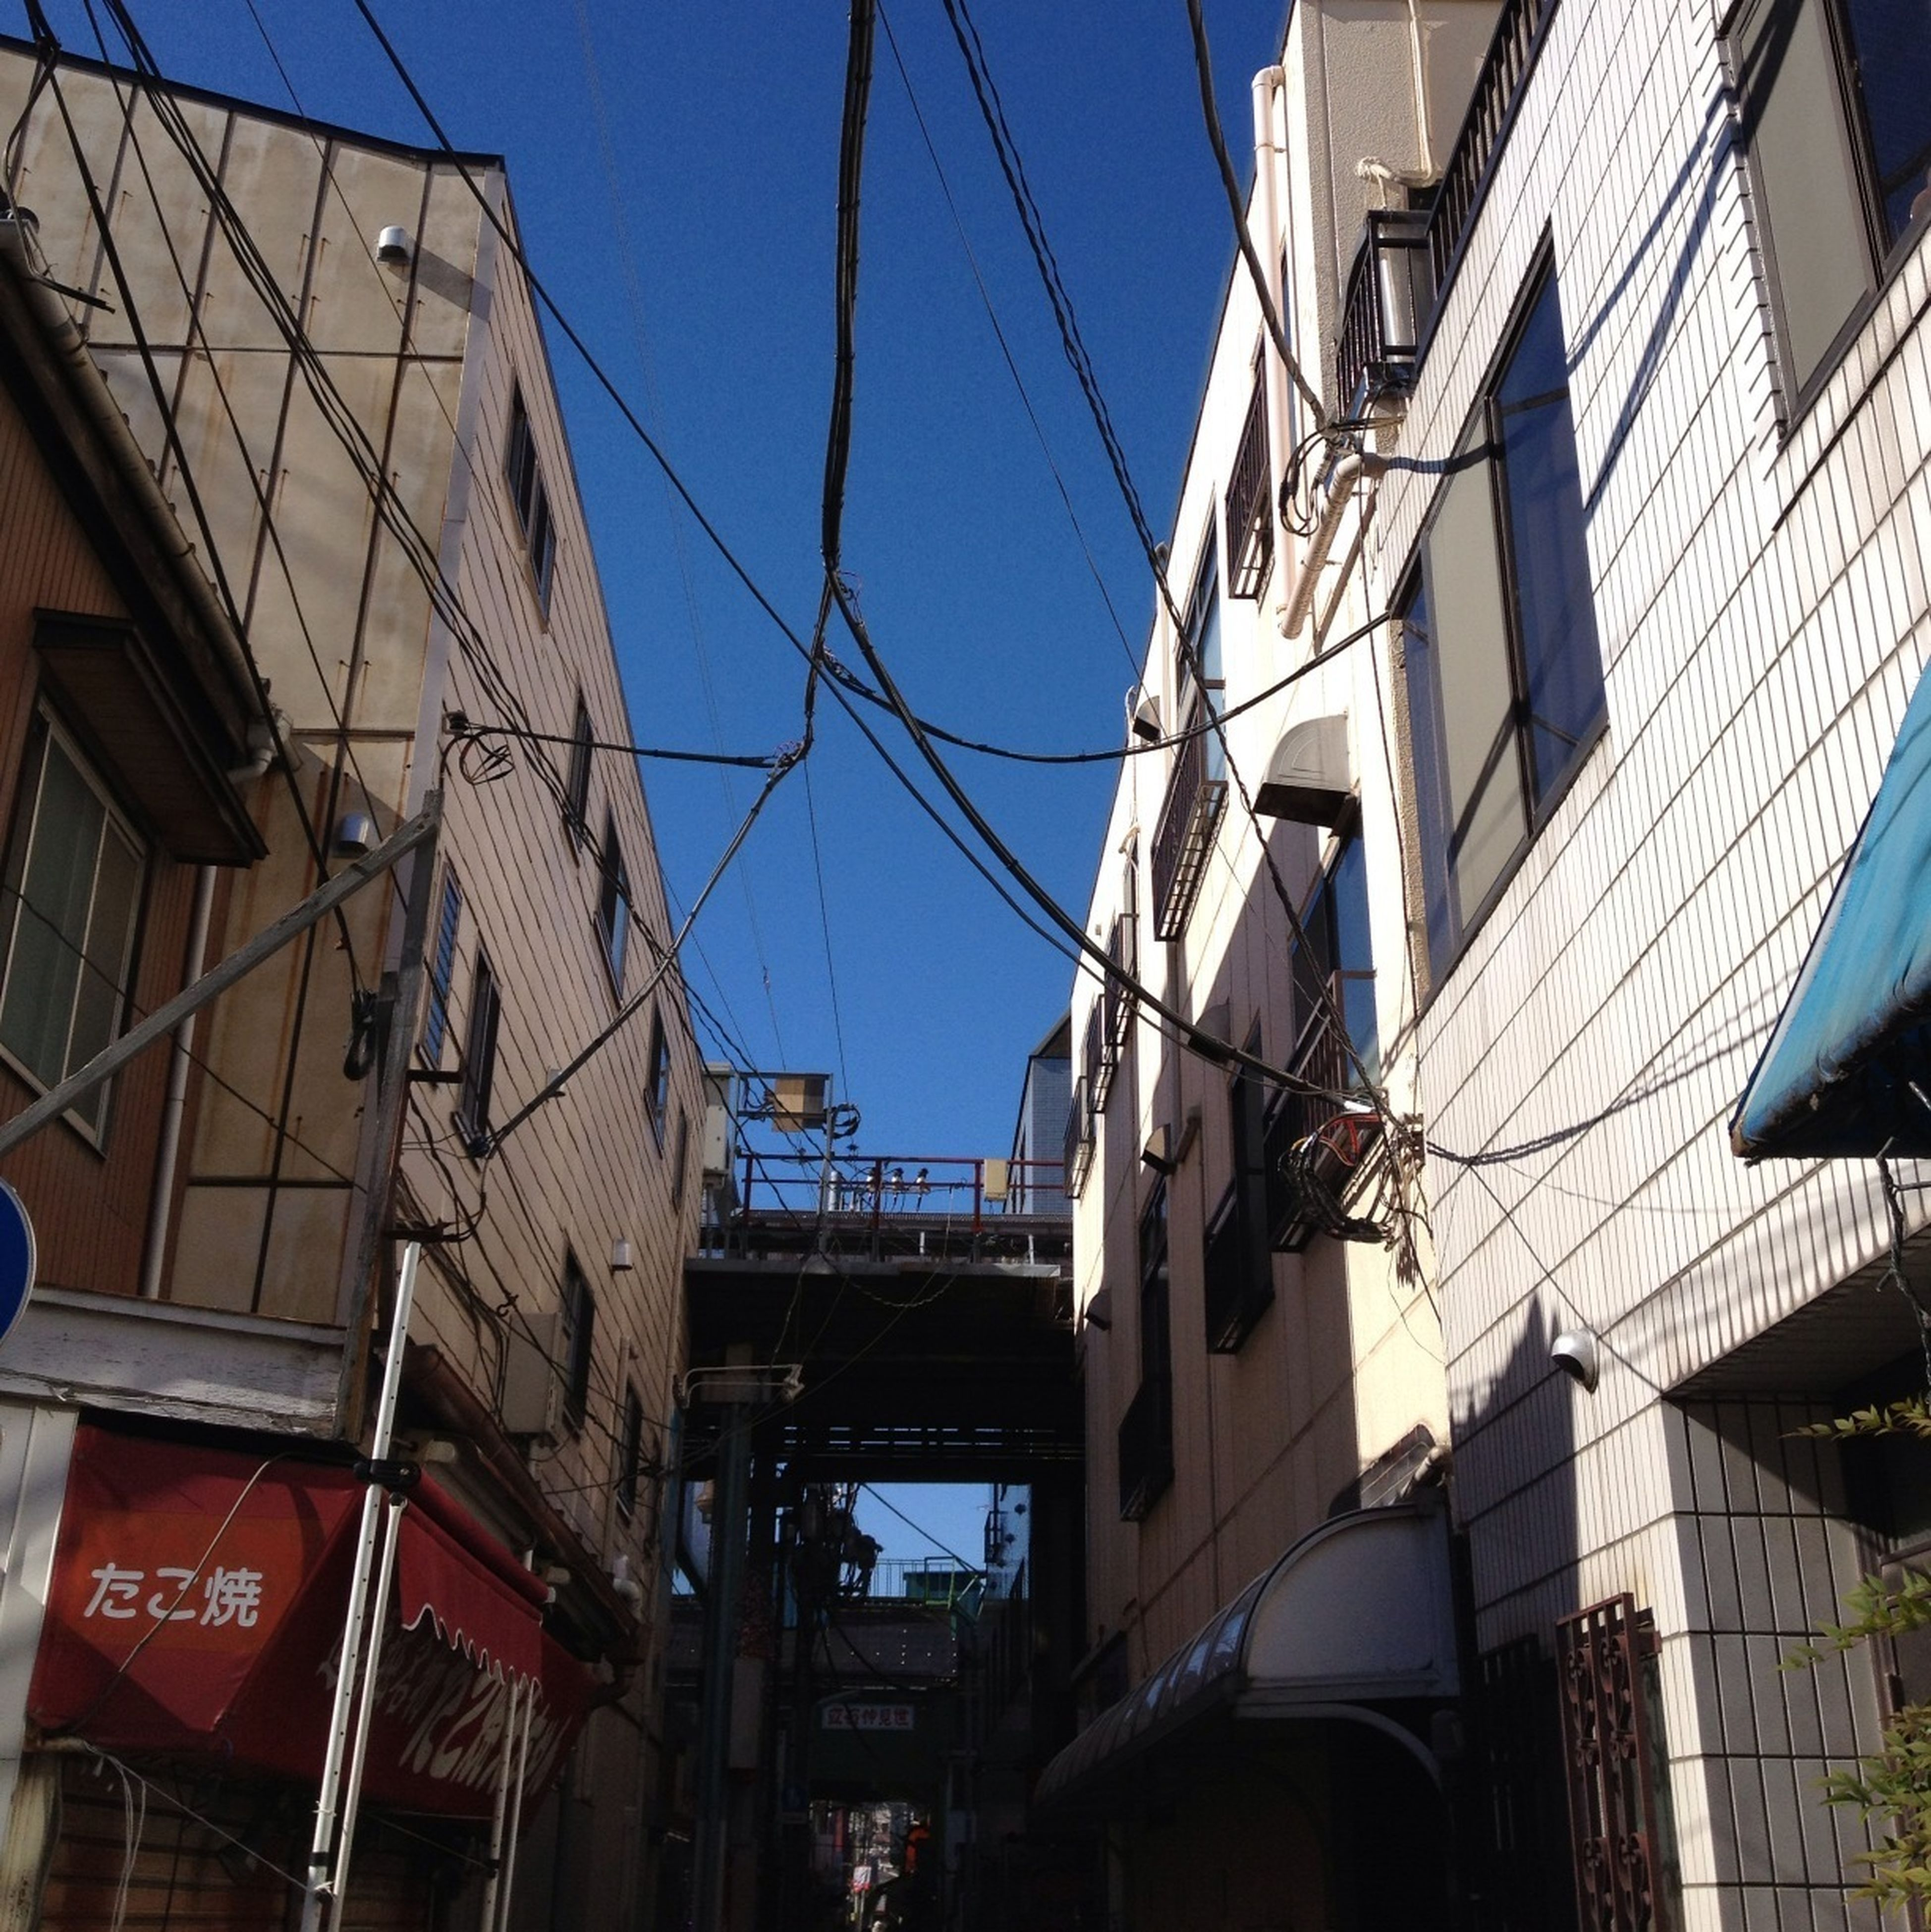 architecture, built structure, building exterior, low angle view, city, building, clear sky, residential structure, residential building, blue, window, cable, connection, day, outdoors, power line, no people, sky, sunlight, modern